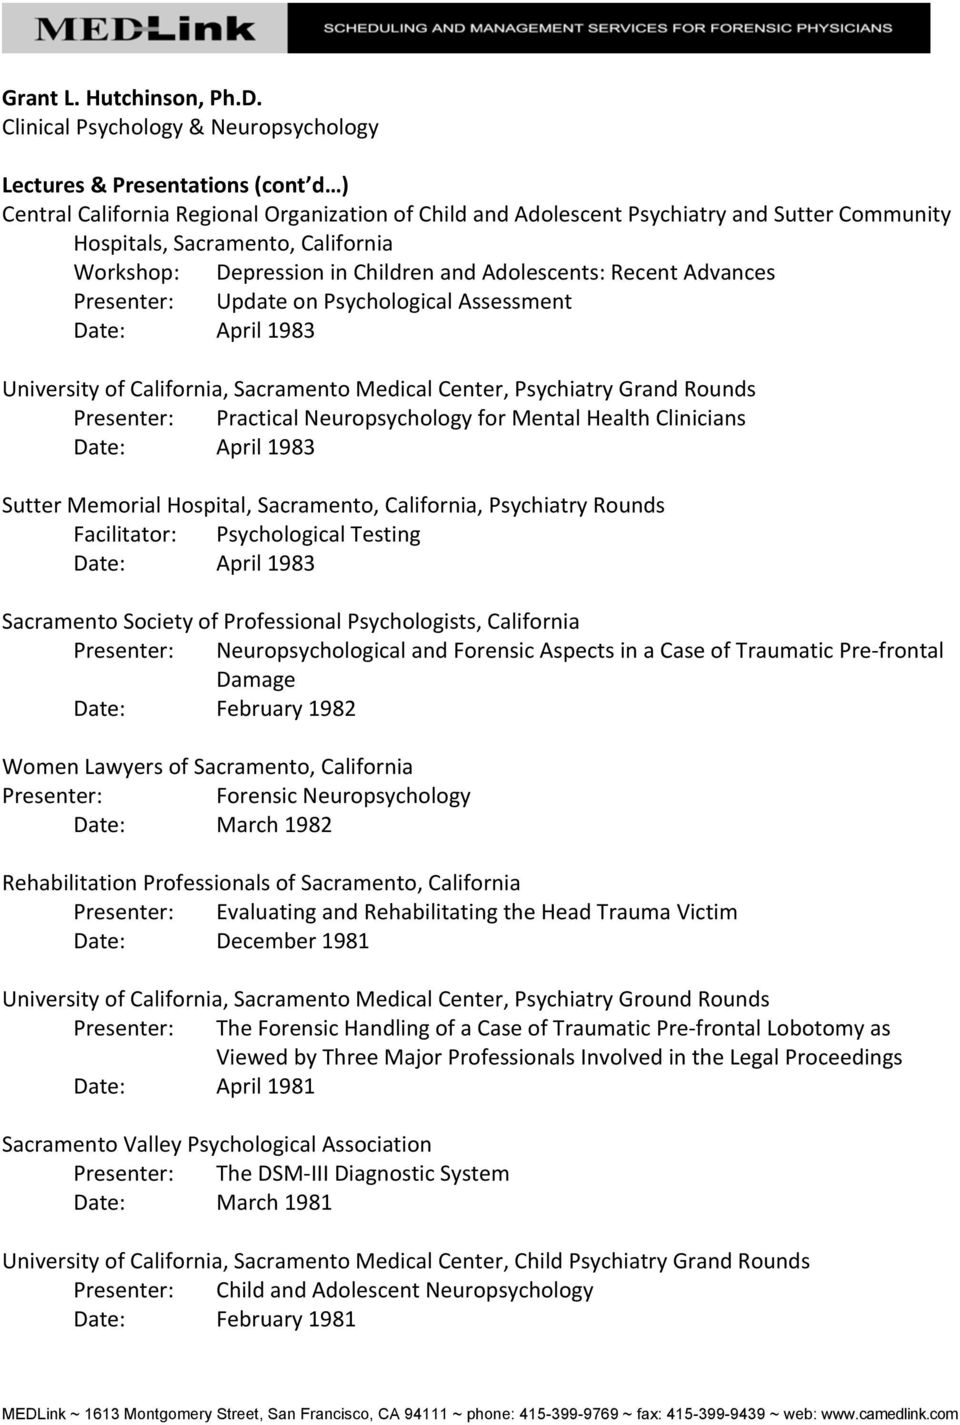 UpdateonPsychologicalAssessment Date: April1983 UniversityofCalifornia,SacramentoMedicalCenter,PsychiatryGrandRounds Presenter: PracticalNeuropsychologyforMentalHealthClinicians Date: April1983